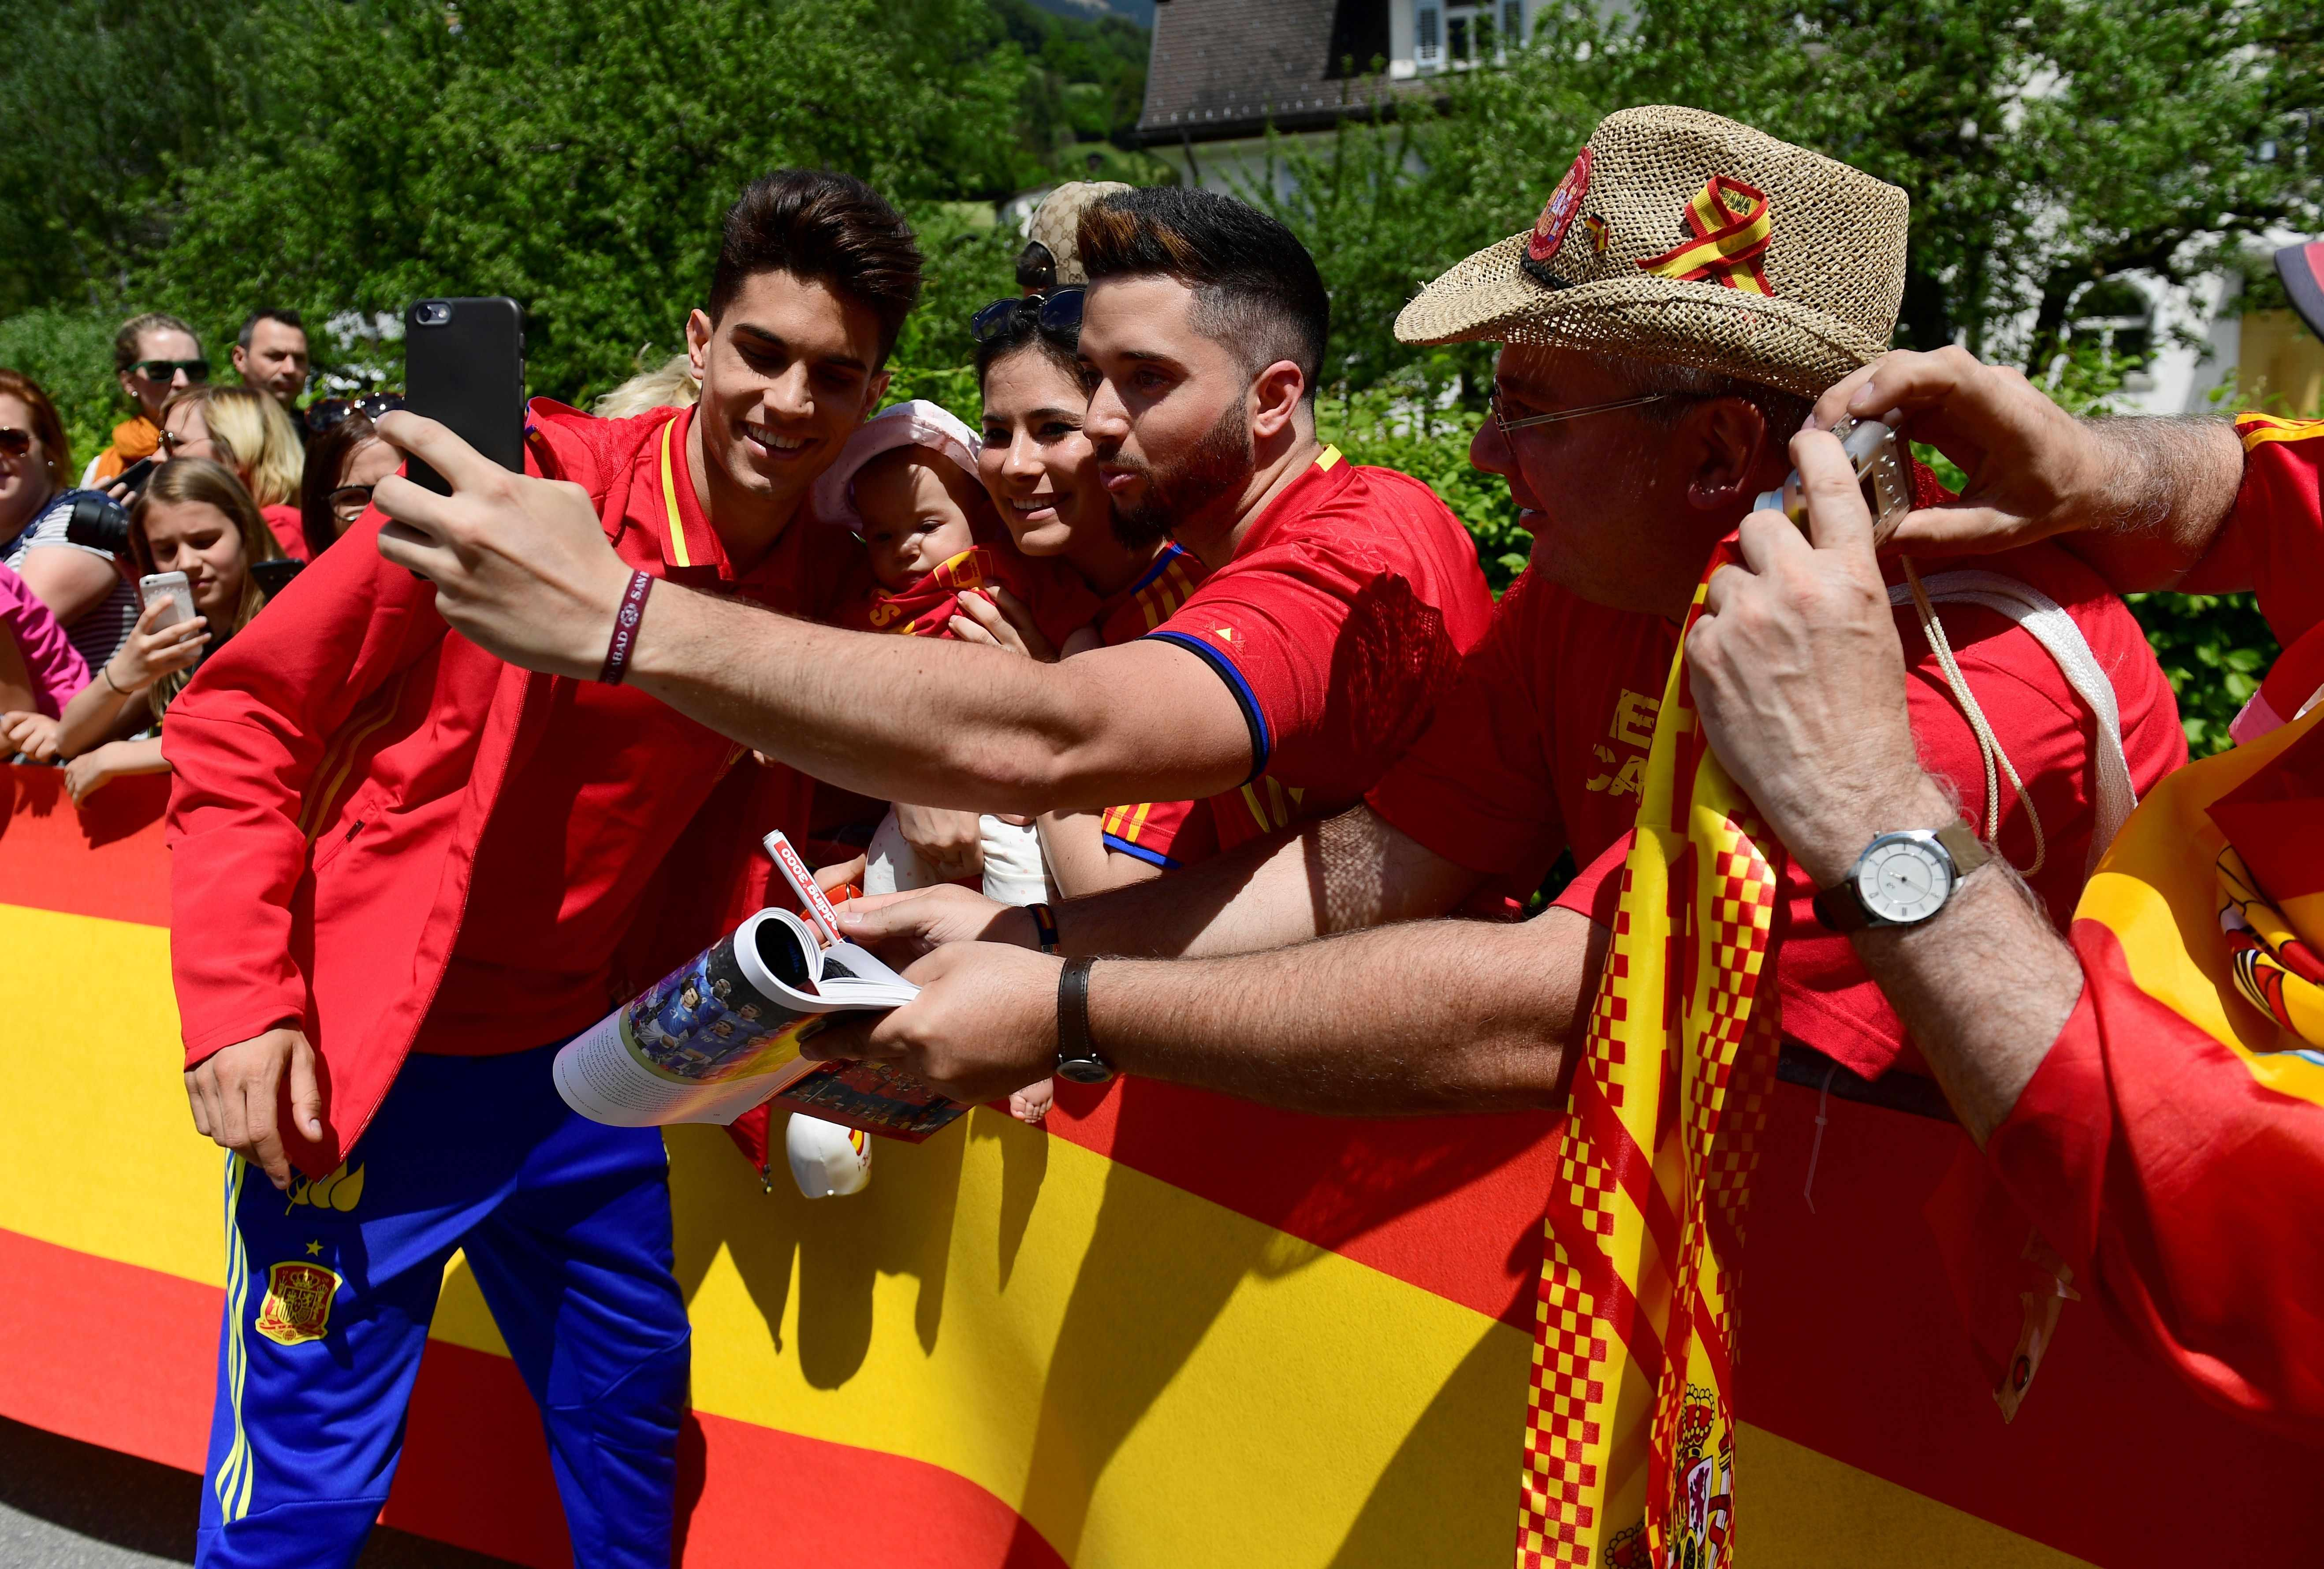 Spain's defender Marc Batra (L) poses with fans as he arrives at his hotel in Schruns on May 26, 2016 where the team will train for the upcoming Euro 2016 European football championships.     / AFP / PIERRE-PHILIPPE MARCOU        (Photo credit should read PIERRE-PHILIPPE MARCOU/AFP/Getty Images)